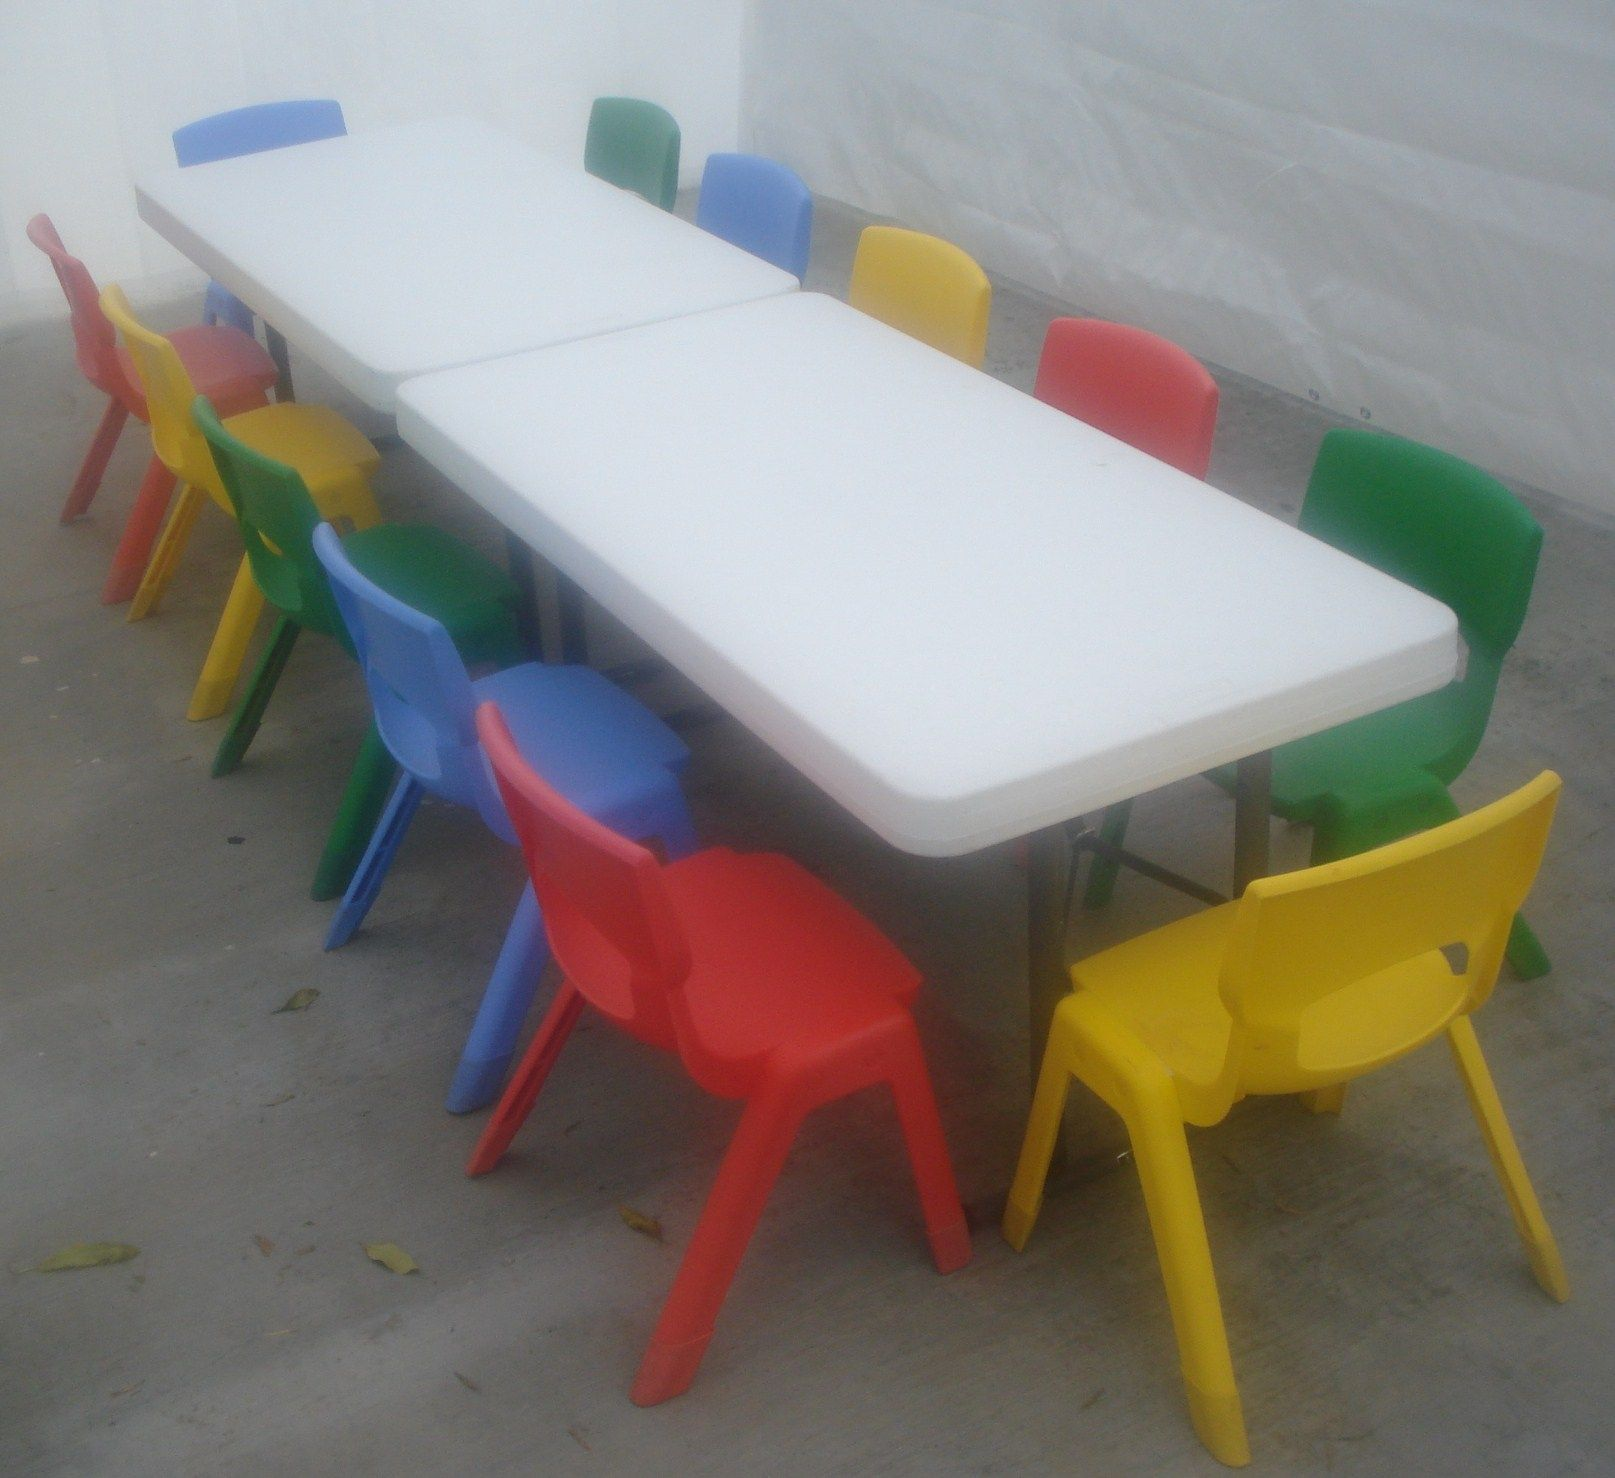 Kings Fun House Jumpers Party Rentals Kids Tables And Chairs